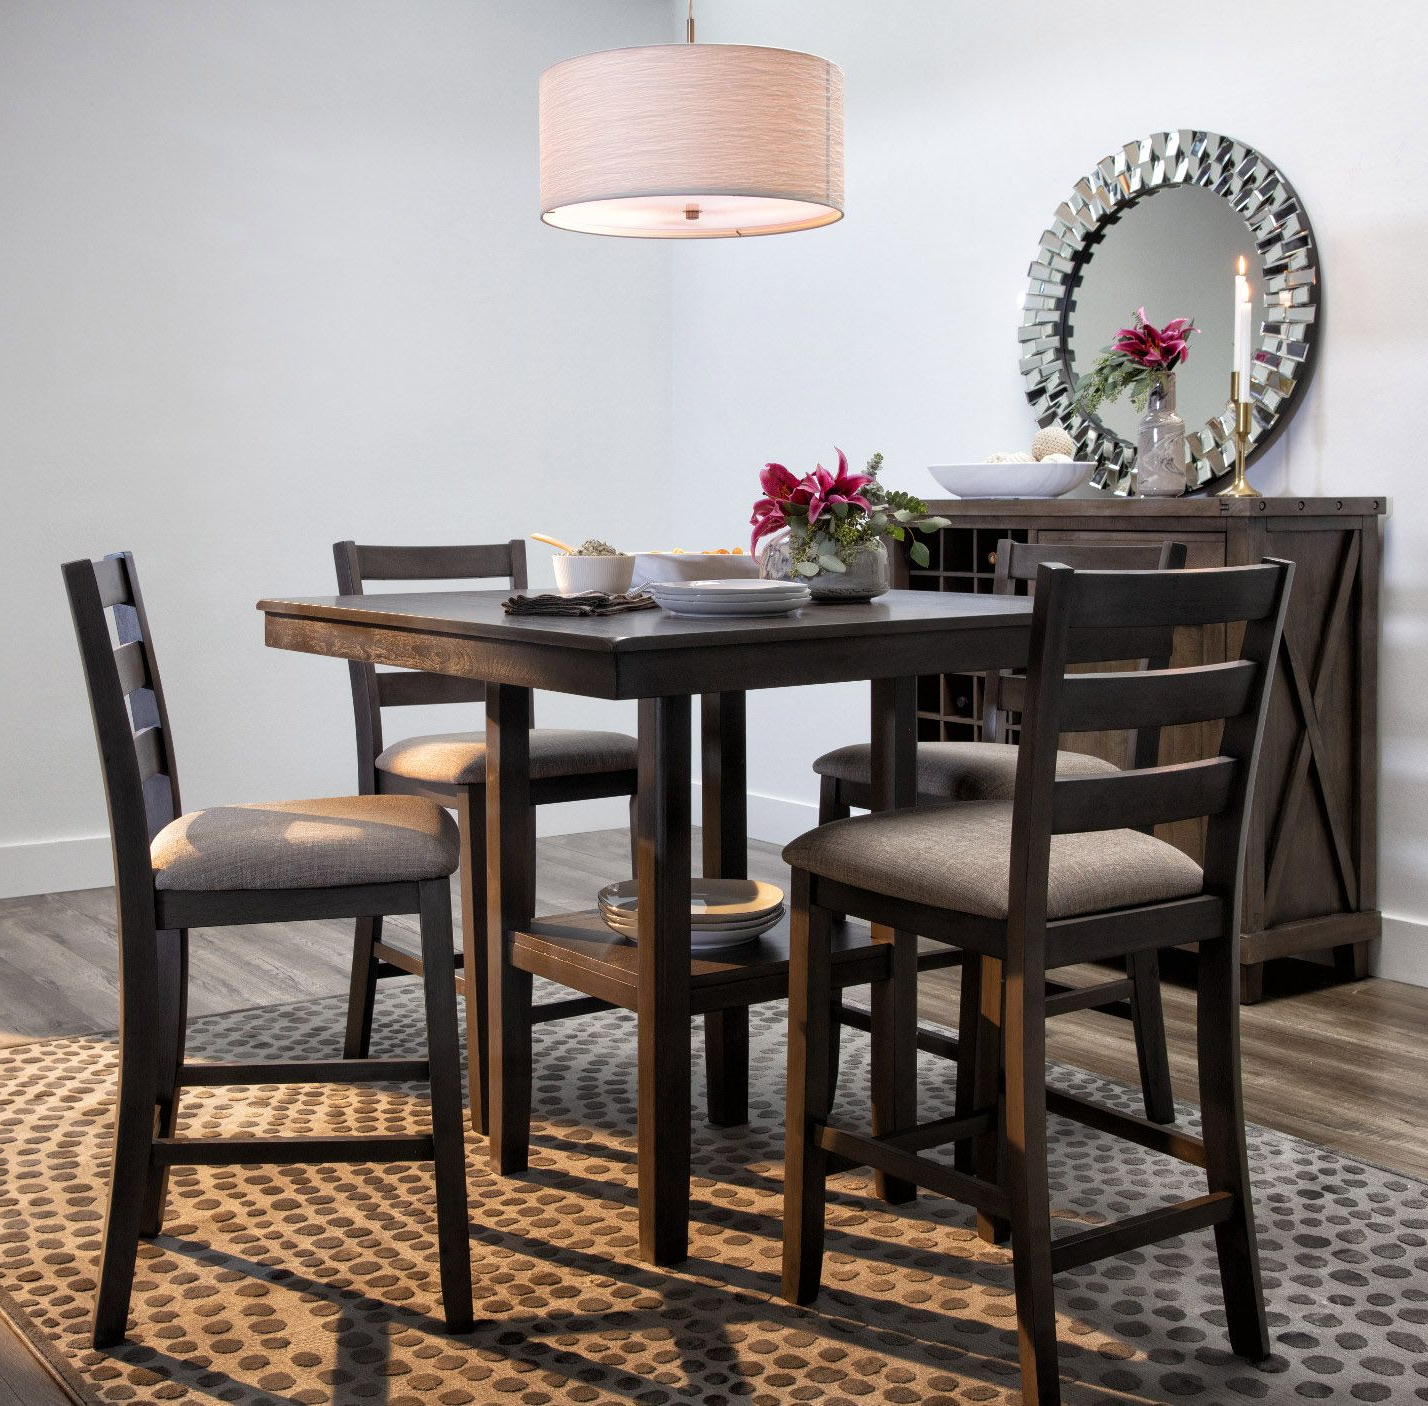 Dining Room Decor throughout Fashionable Bistro Transitional 4-Seating Square Dining Tables